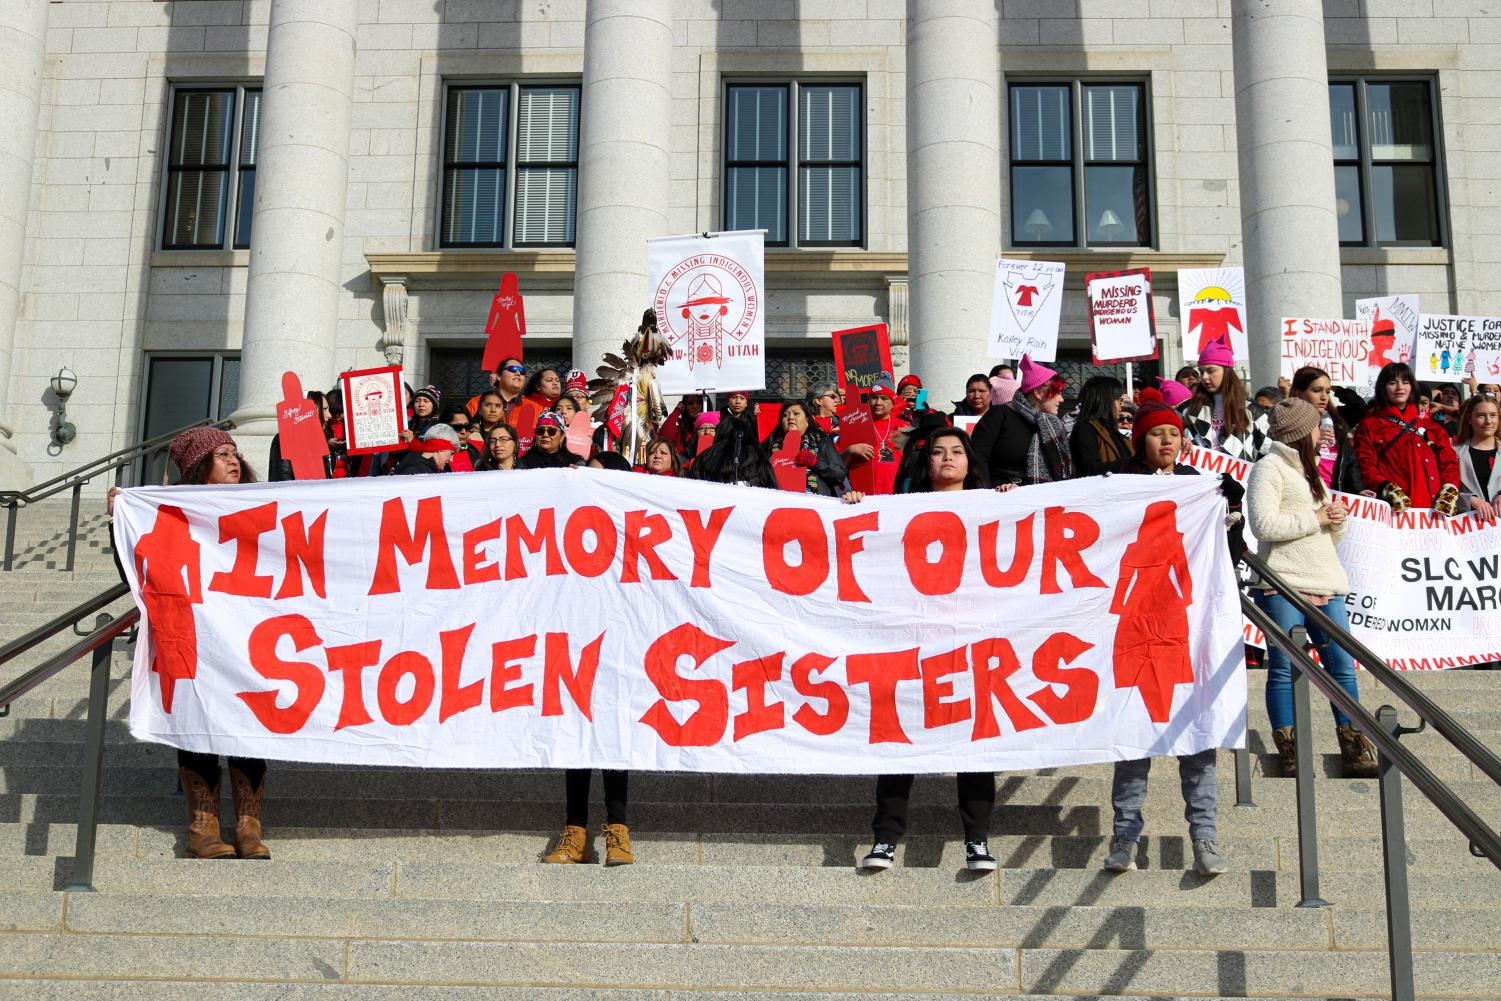 On Jan. 18, 2020 the Missing and Murdered Indigenous Women organization of Utah gather together in solidarity for their stolen sisters at the State Capitol in Salt Lake City, Utah. (Photo by Ivana Martinez | Daily Utah Chronicle)